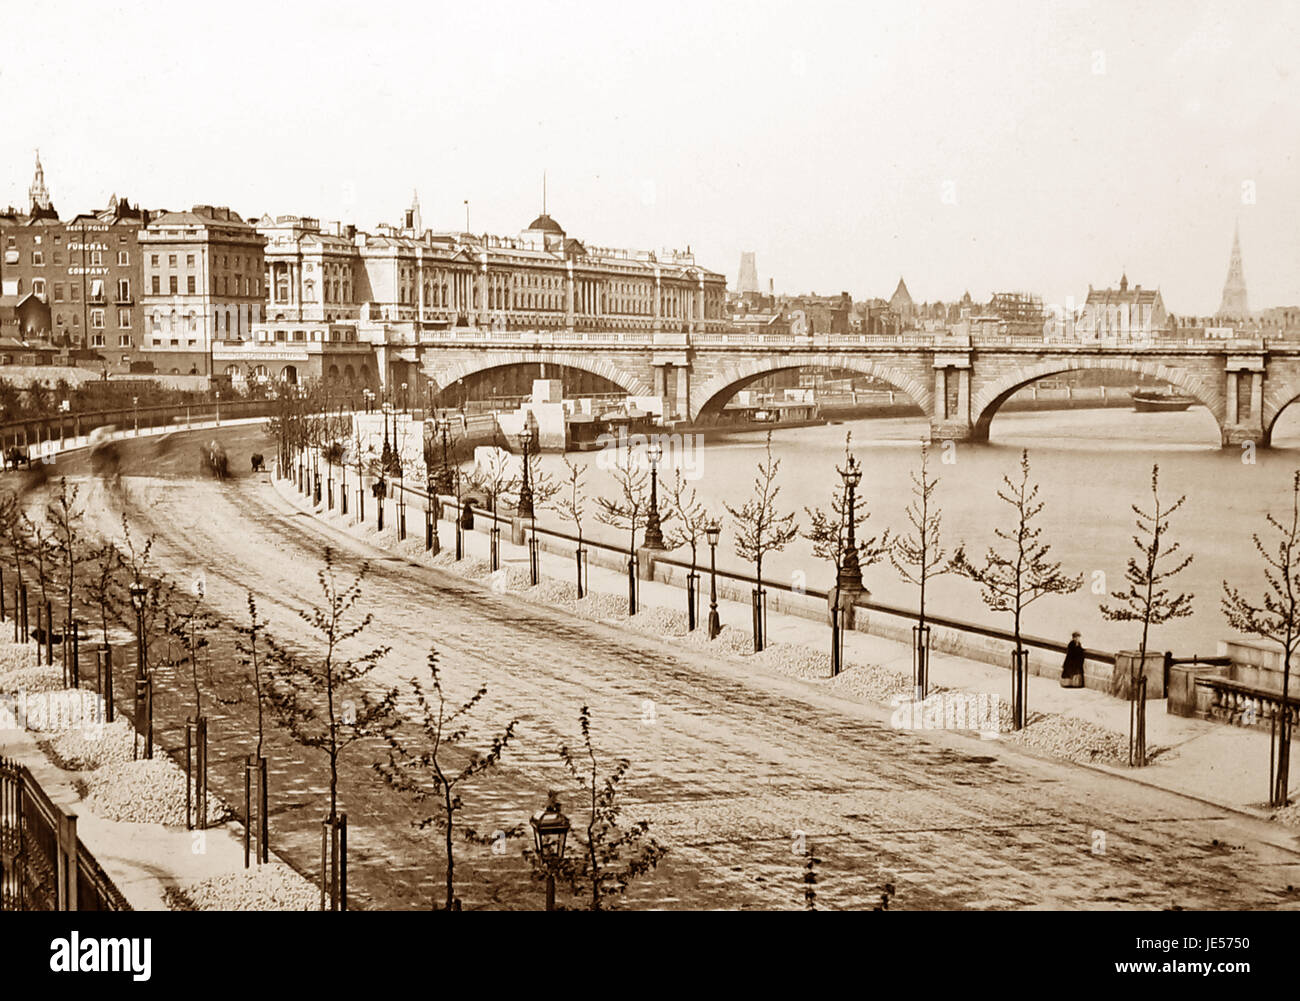 London Embankment in the snow, Victorian period - Stock Image